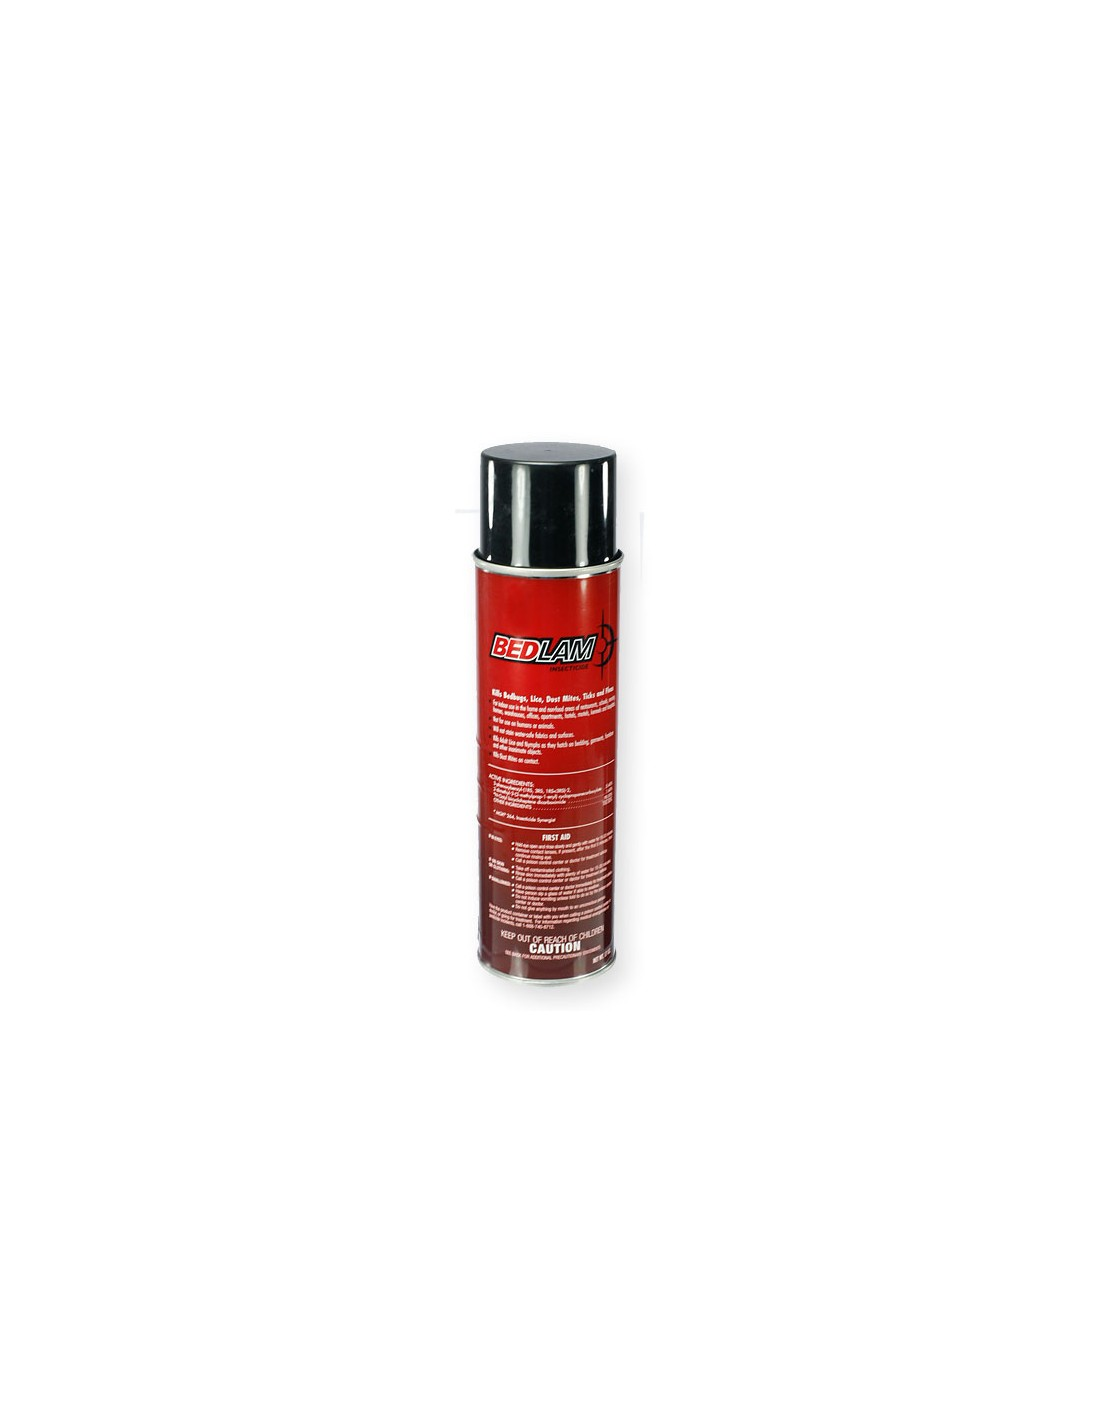 WHAT IS THE DIFFERENCE BETWEEN BEDLAM SPRAY AND CROSSFIRE SPRAY AND WHICH ONE WOULD BE THE BEST FOR BED BUGS ?